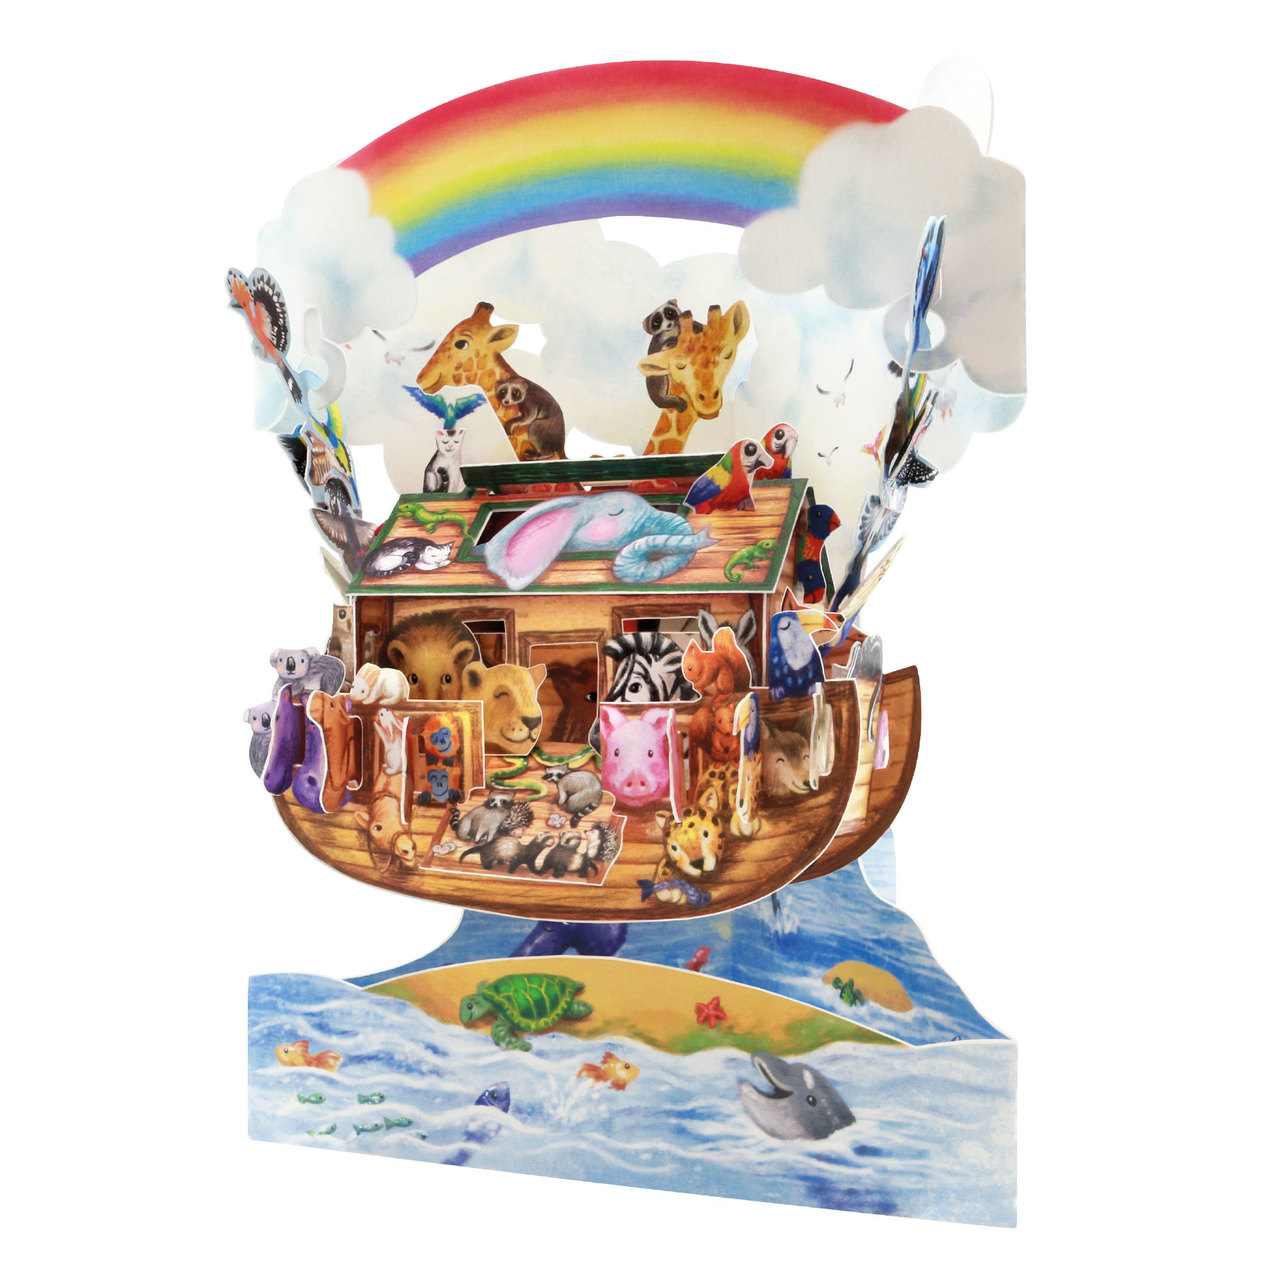 Santoro Noah's Ark 3D Pop-Up Swing Card - Greetings and Birthday Card